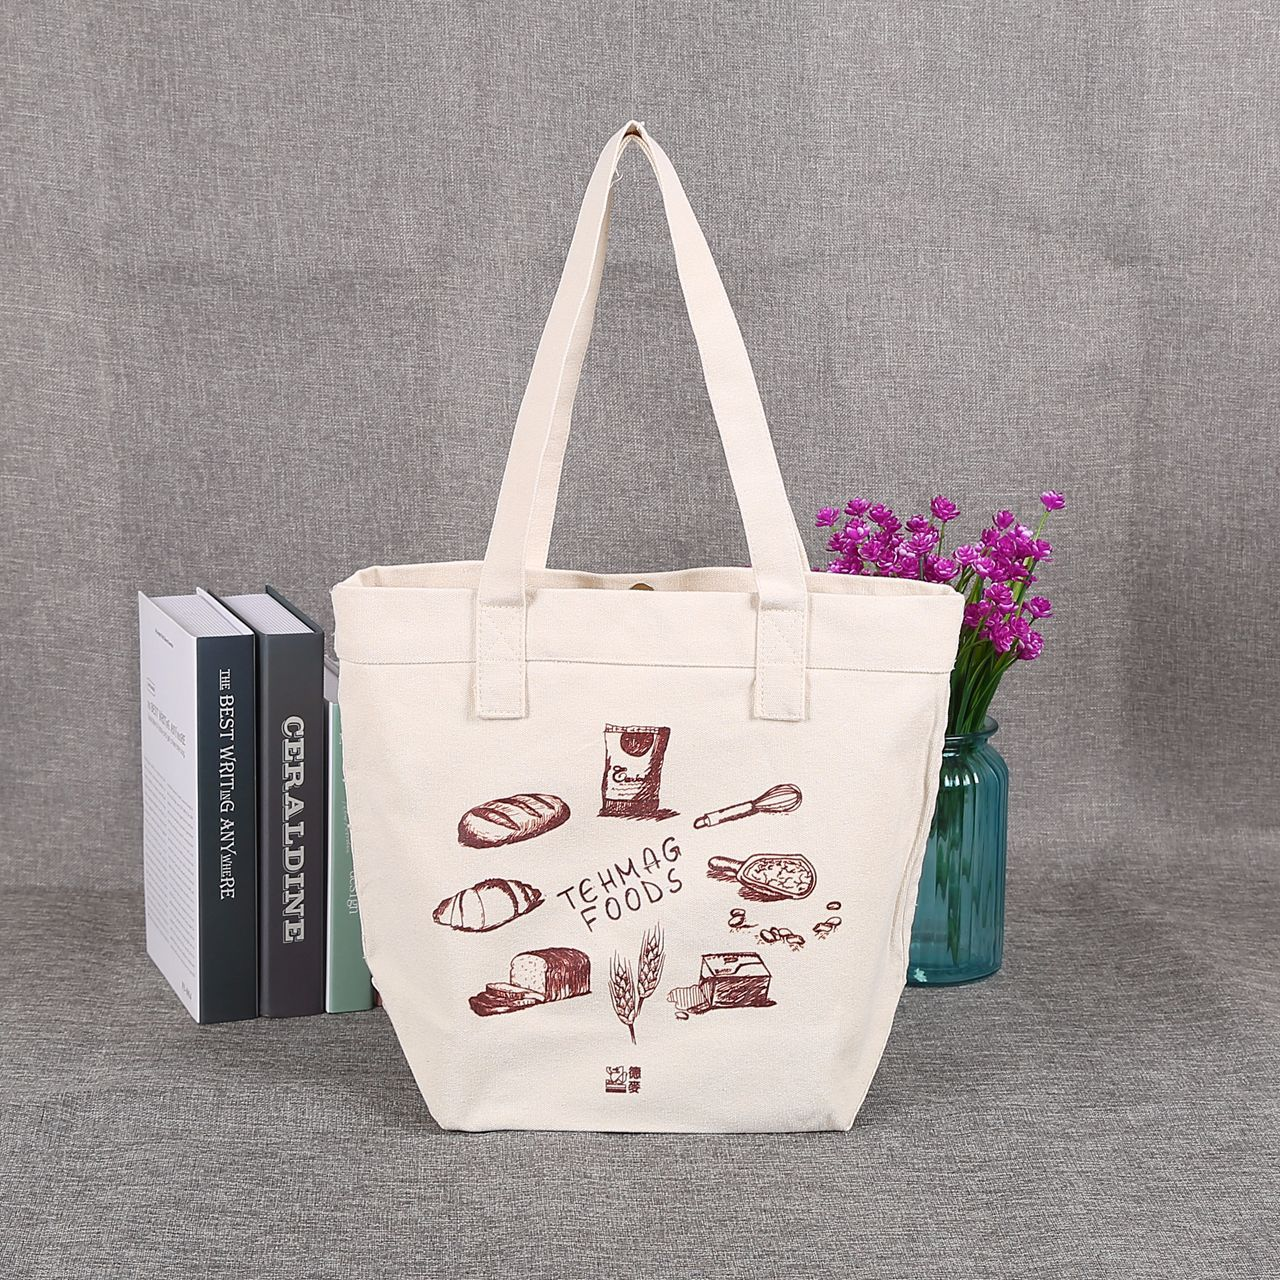 Wholesale custom made cotton canvas bag bag green canvas bag can be customized LOGO